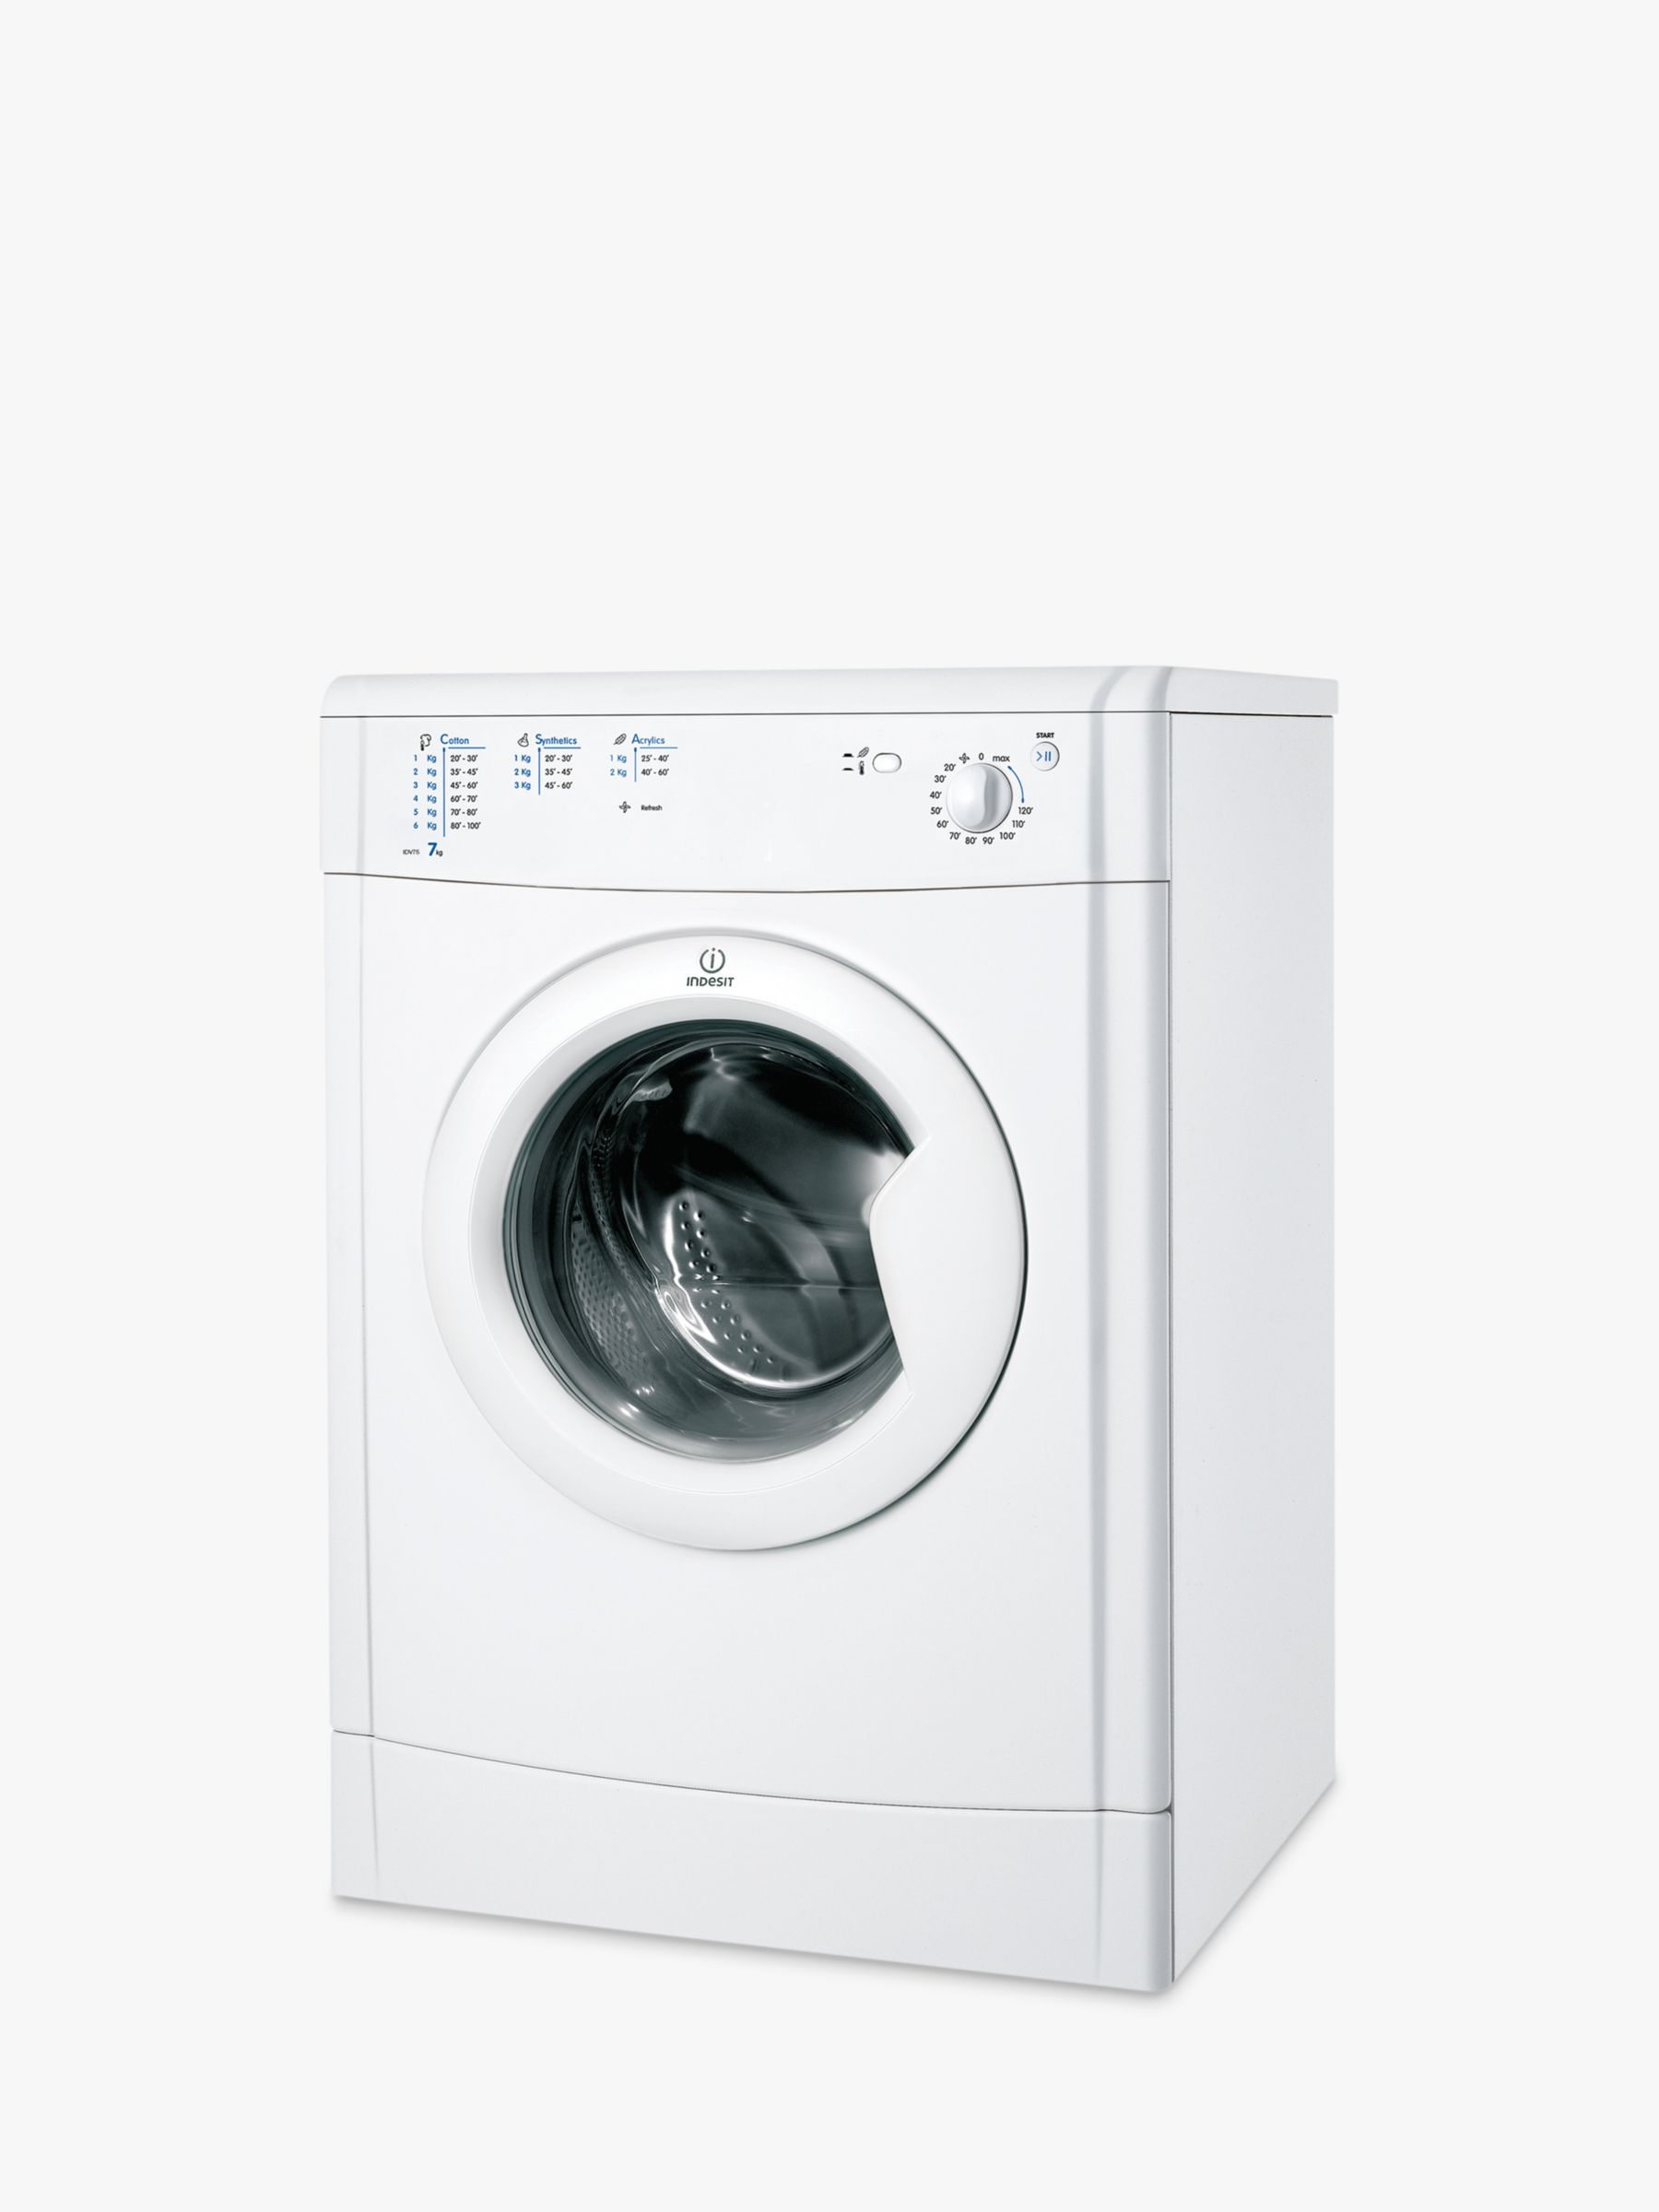 Indesit Indesit IDV75 Ecotime Vented Tumble Dryer, 7kg Load, B Energy Rating, White